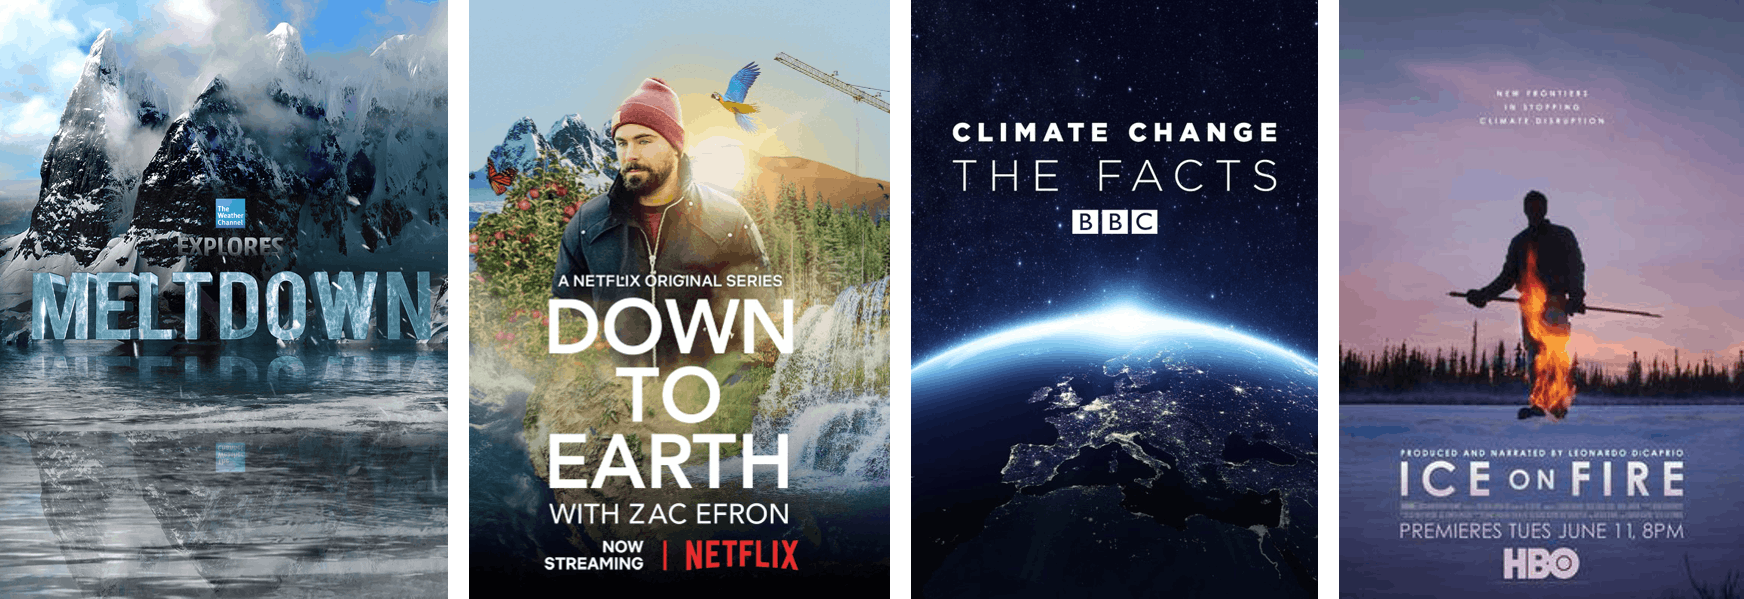 Posters of documentaries which Carbfix has been featured in.  Meltdown, Down to Earth with Zac Efron, Climate Change: The Facts, Ice on Fire.